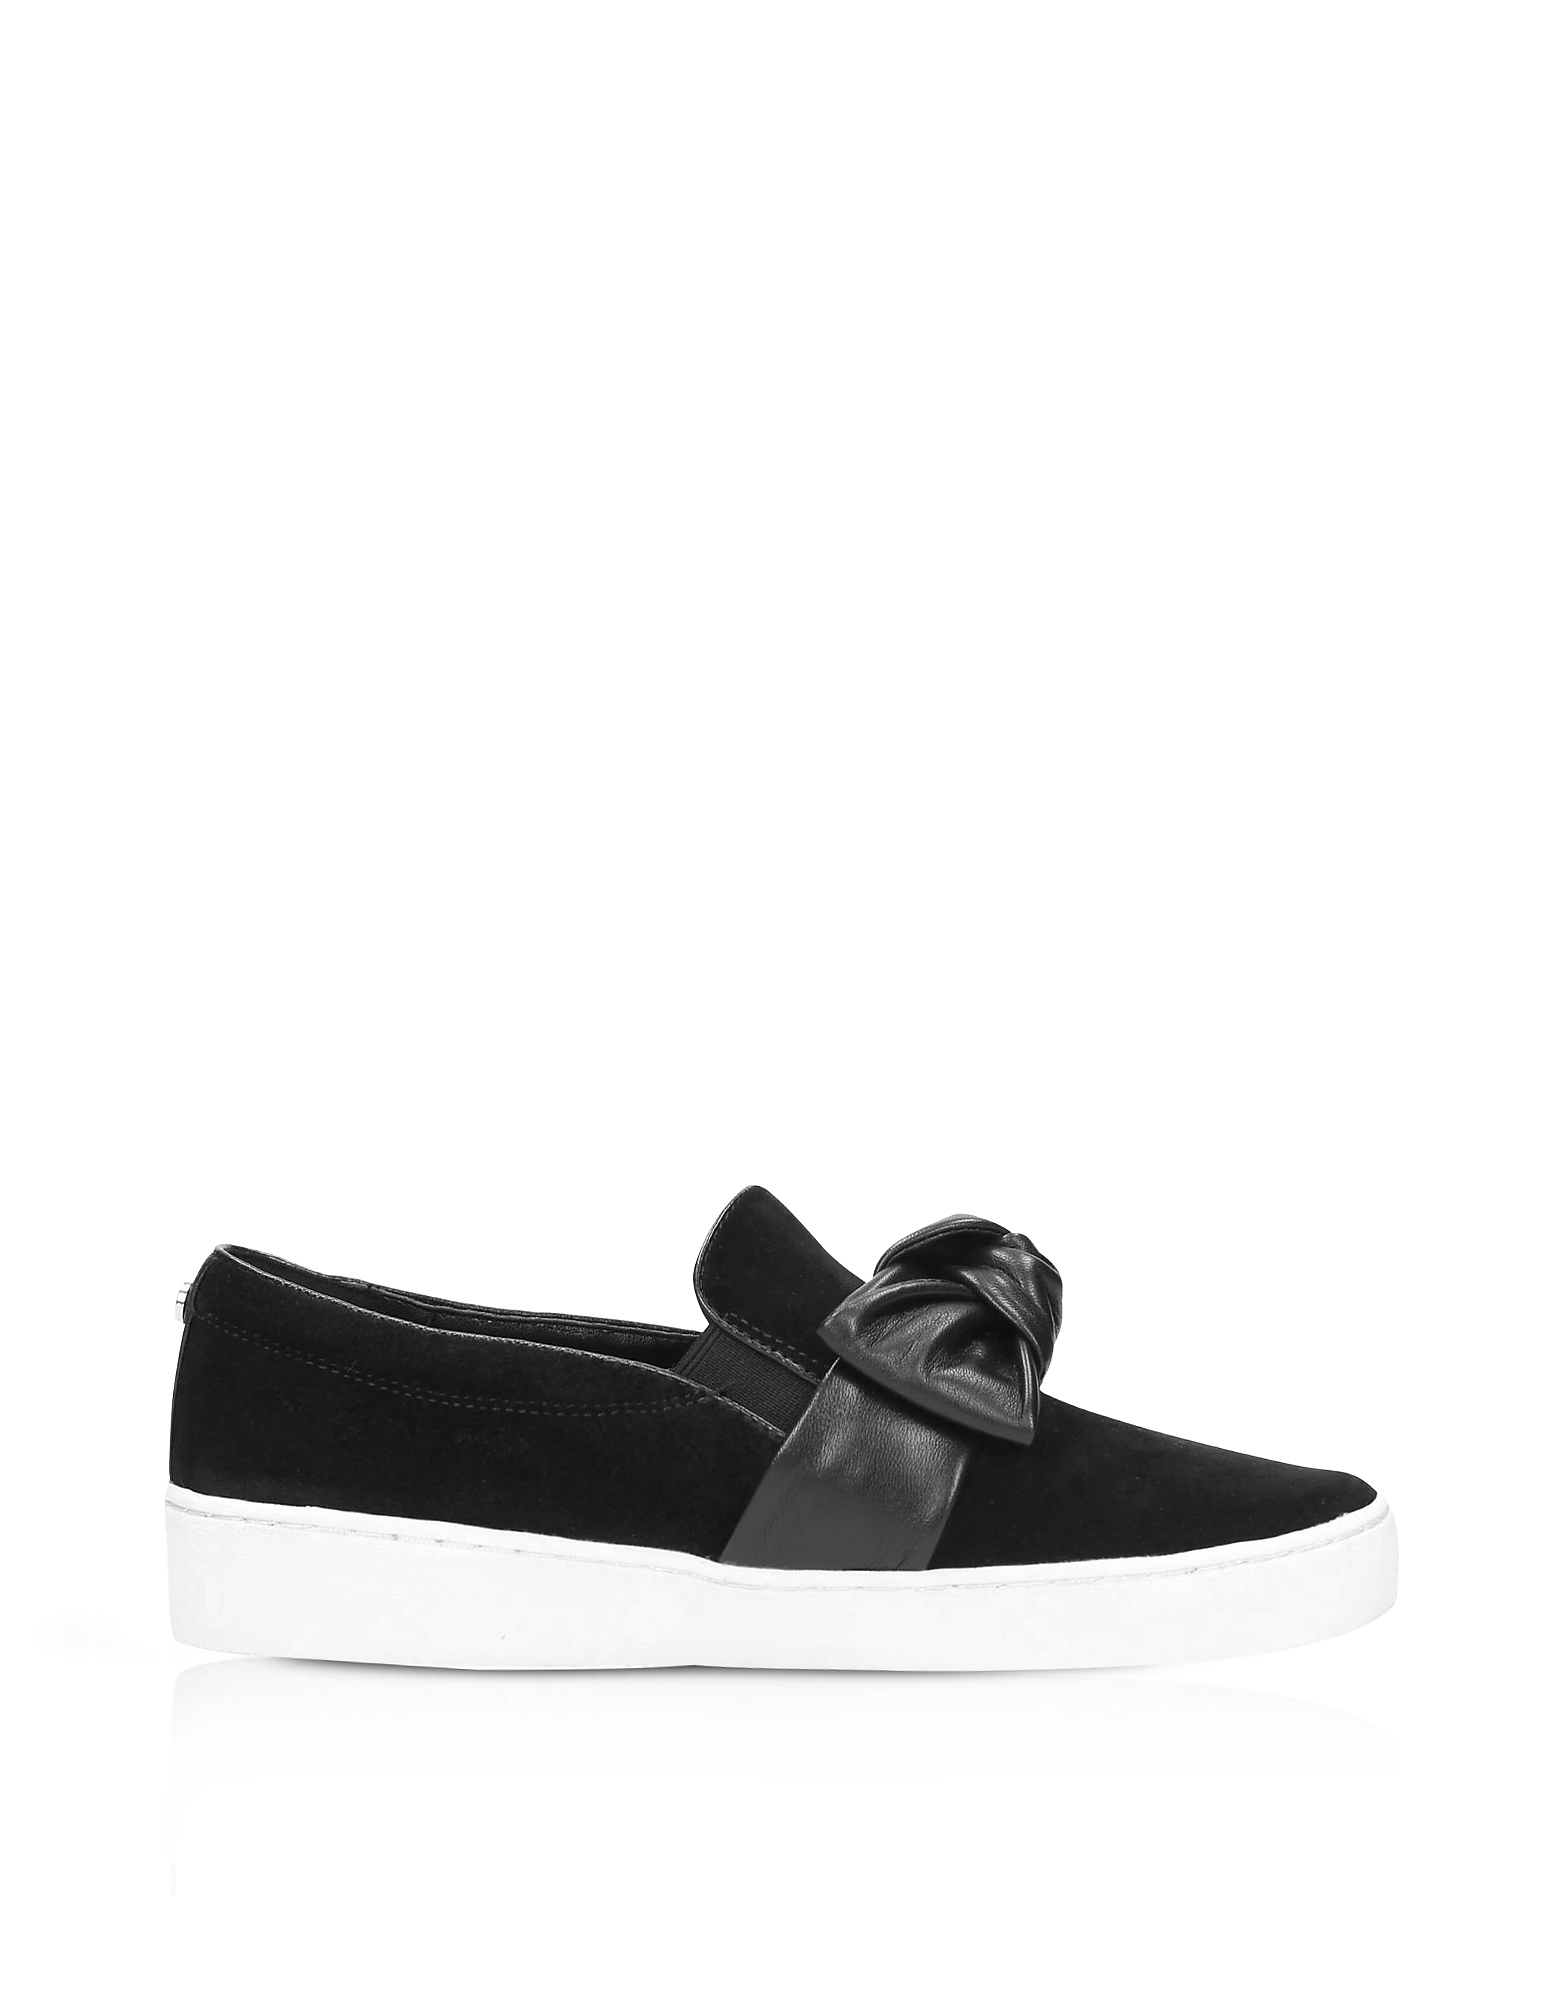 Michael Kors Shoes, Willa Black Suede Slip On Sneakers